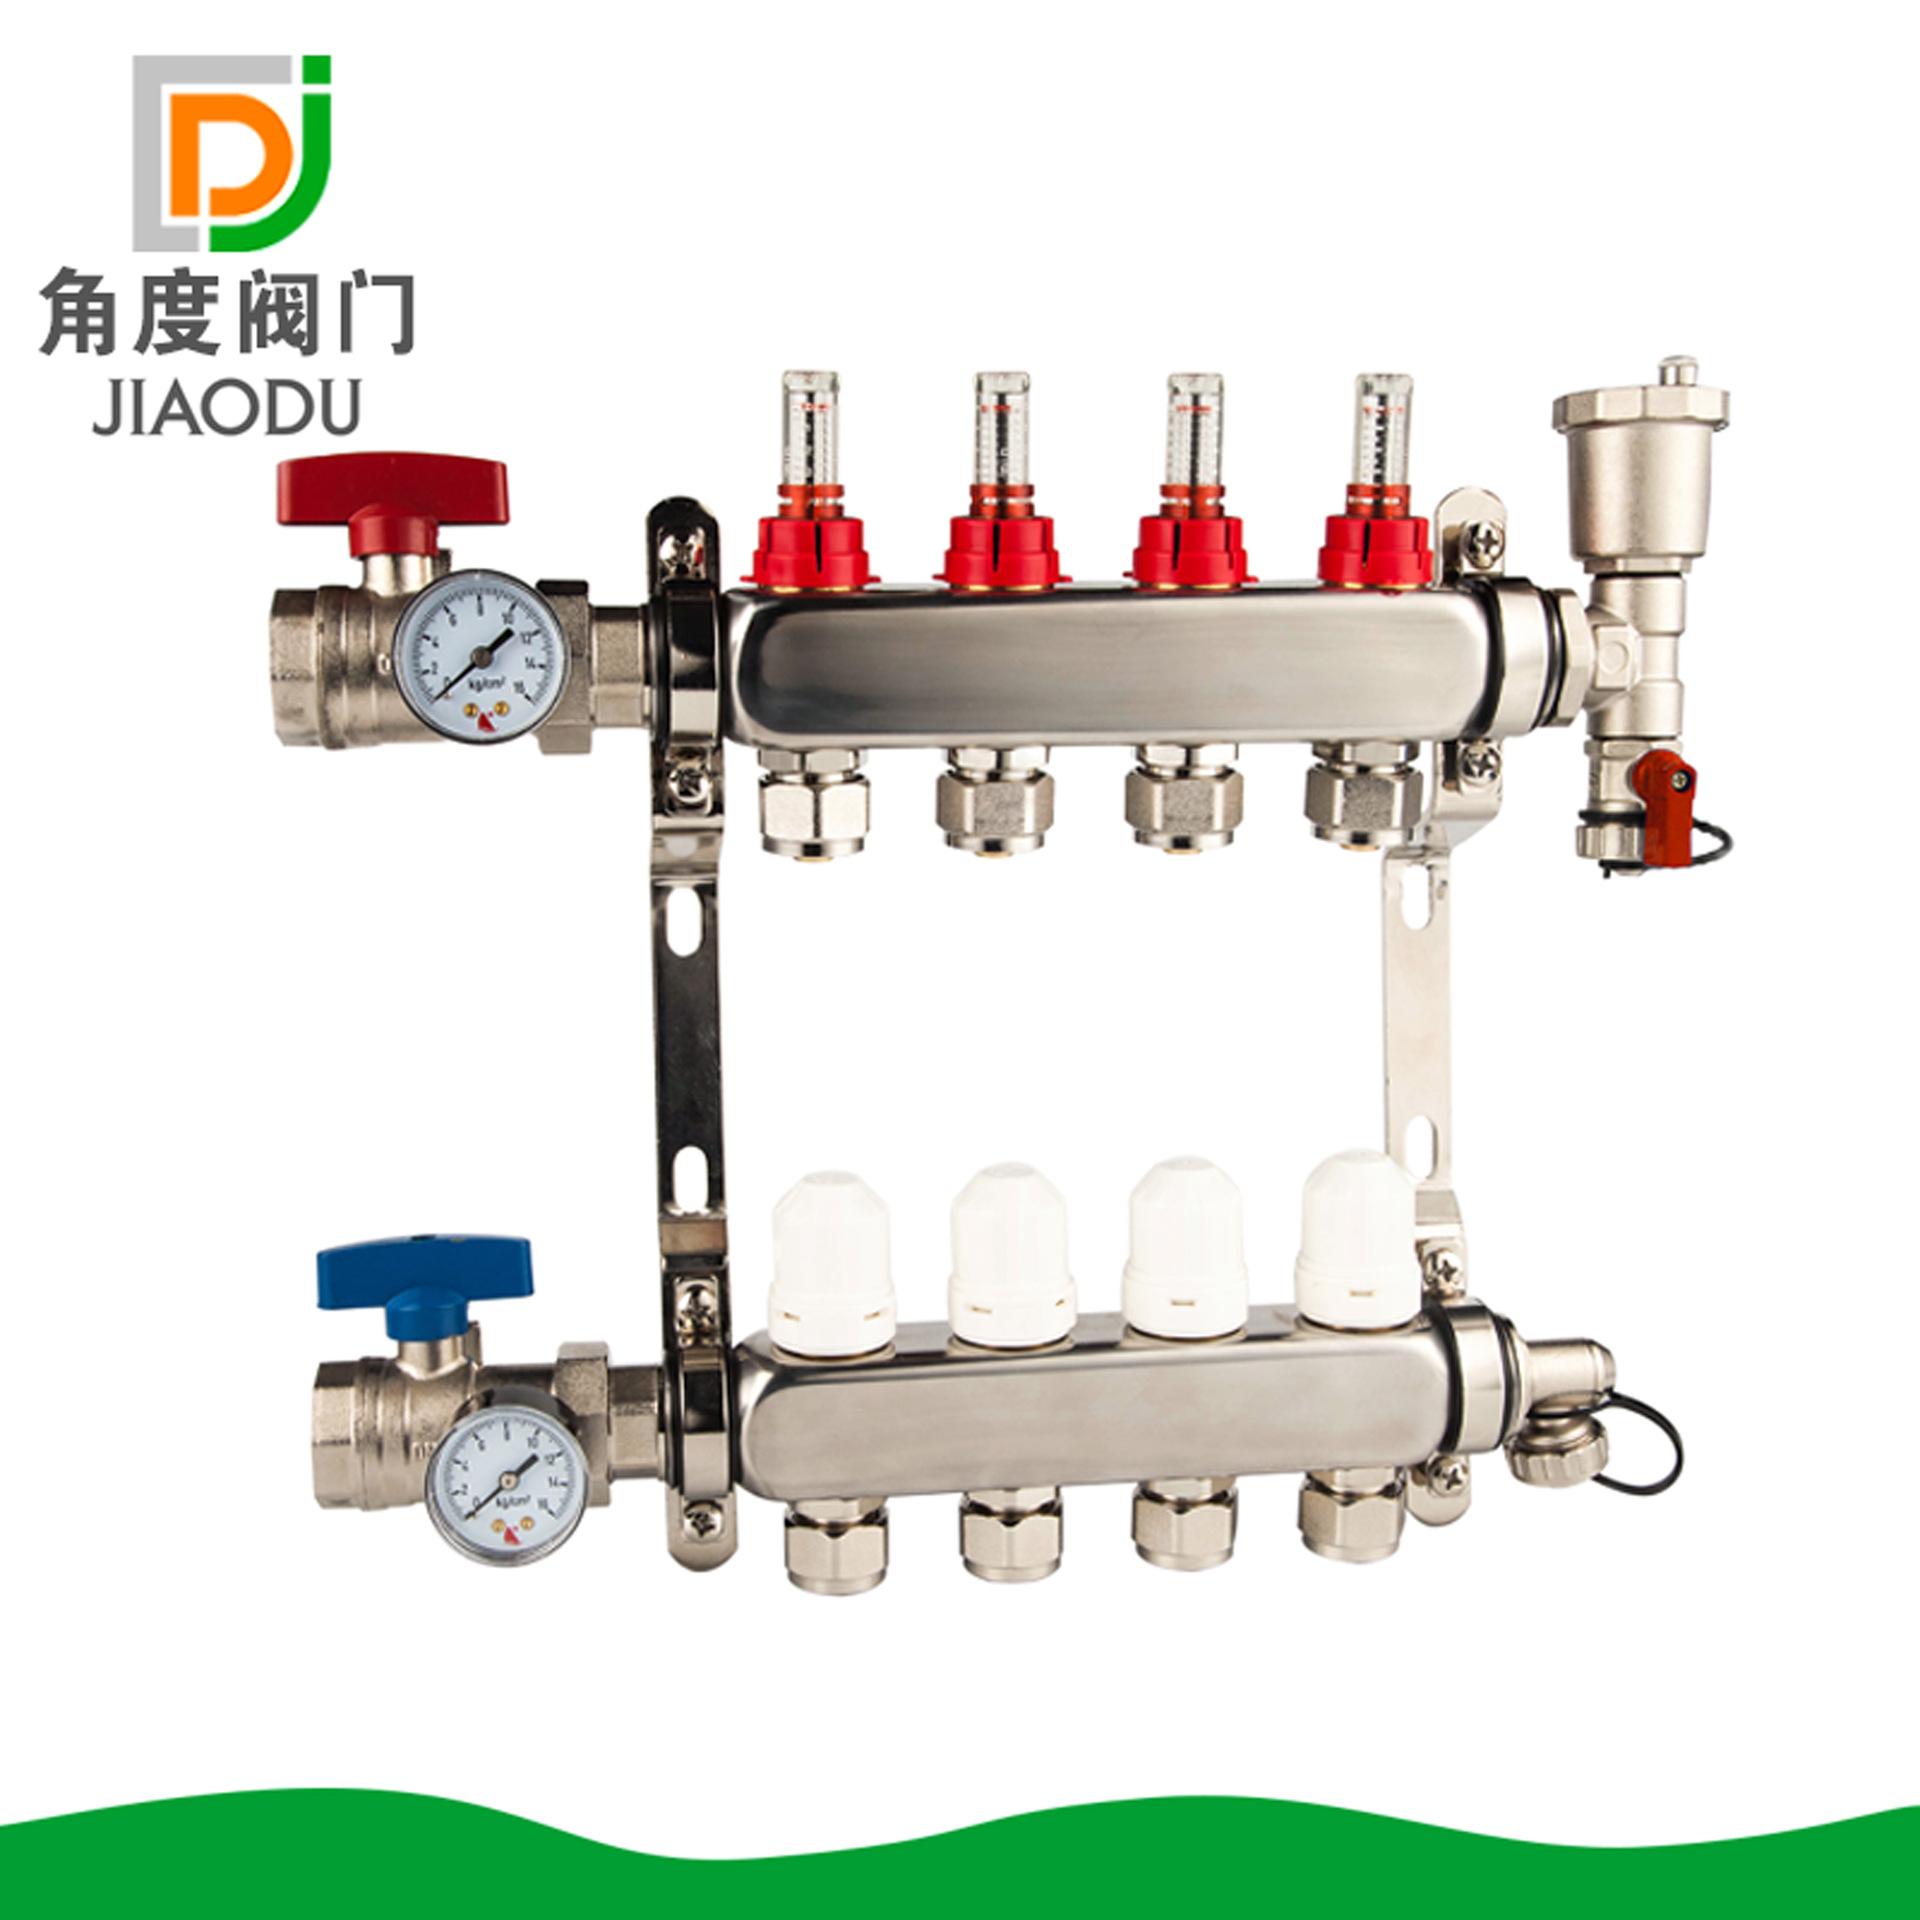 304 Polished Stainless Steel Floor Warm 4 WAYS Visual Flow Meter Sub-collector To Warm Geothermal Water Separator